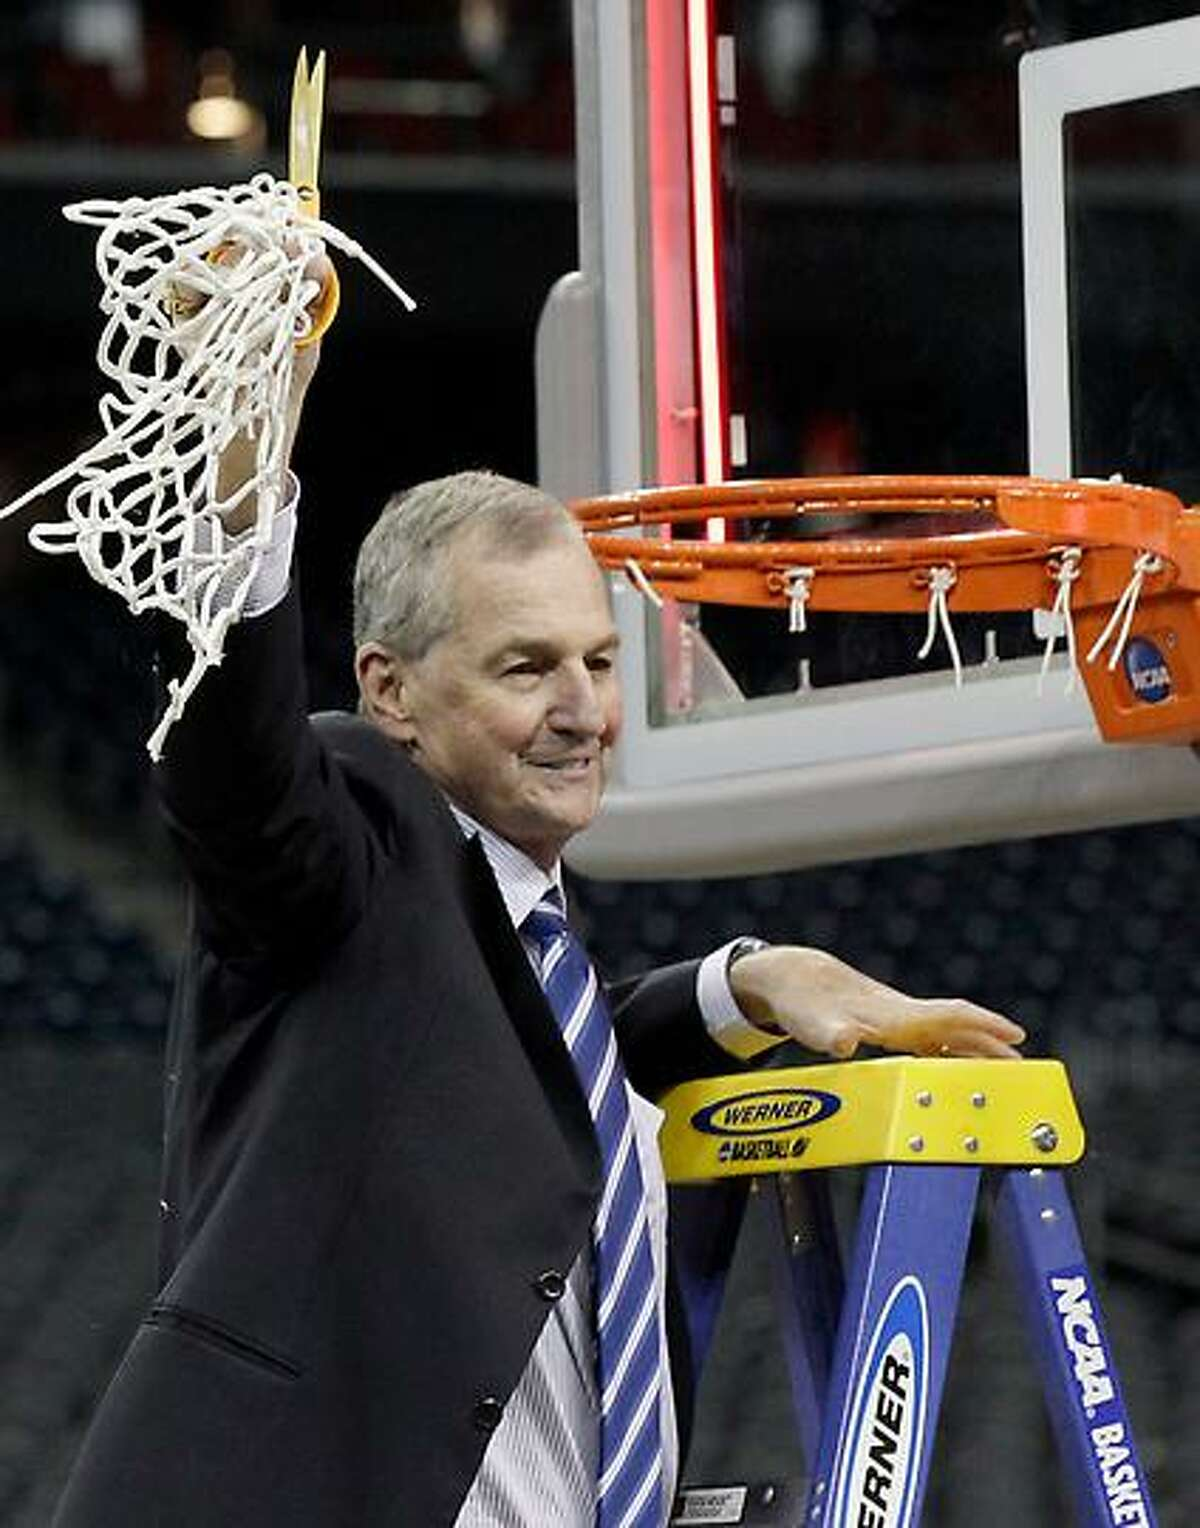 Connecticut head coach Jim Calhoun holds the net after his team won the men's NCAA Final Four college basketball championship game against Butler 53-41 Monday, April 4, 2011, in Houston. (AP Photo/David J. Phillip)